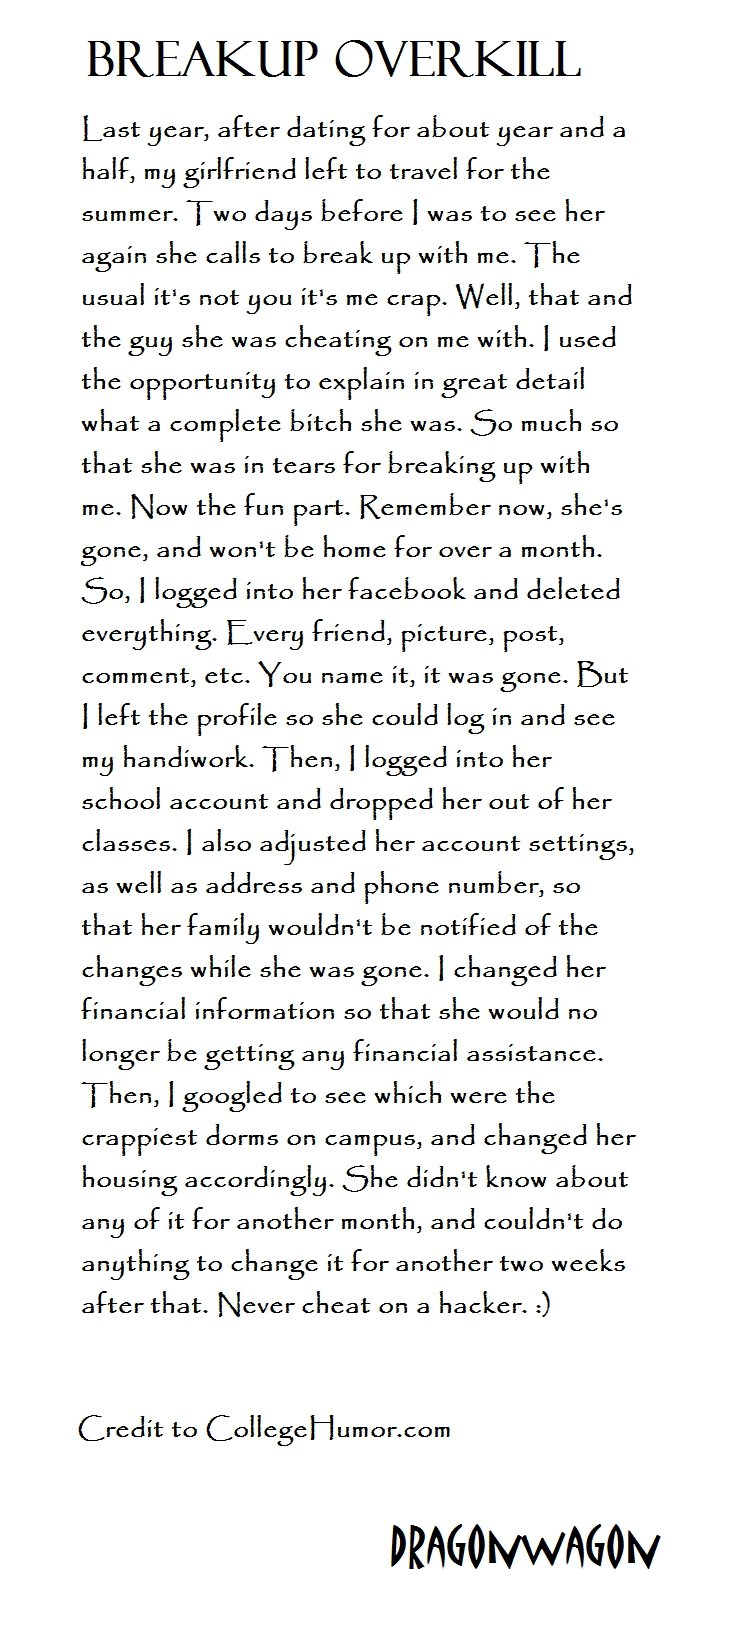 Hilarious Justice, Worth the read. Enjoy. BREAKUP C) 1/ Last year, after dating tor about year and a halt, my girlfriend left to travel tor tho summer, Two clay